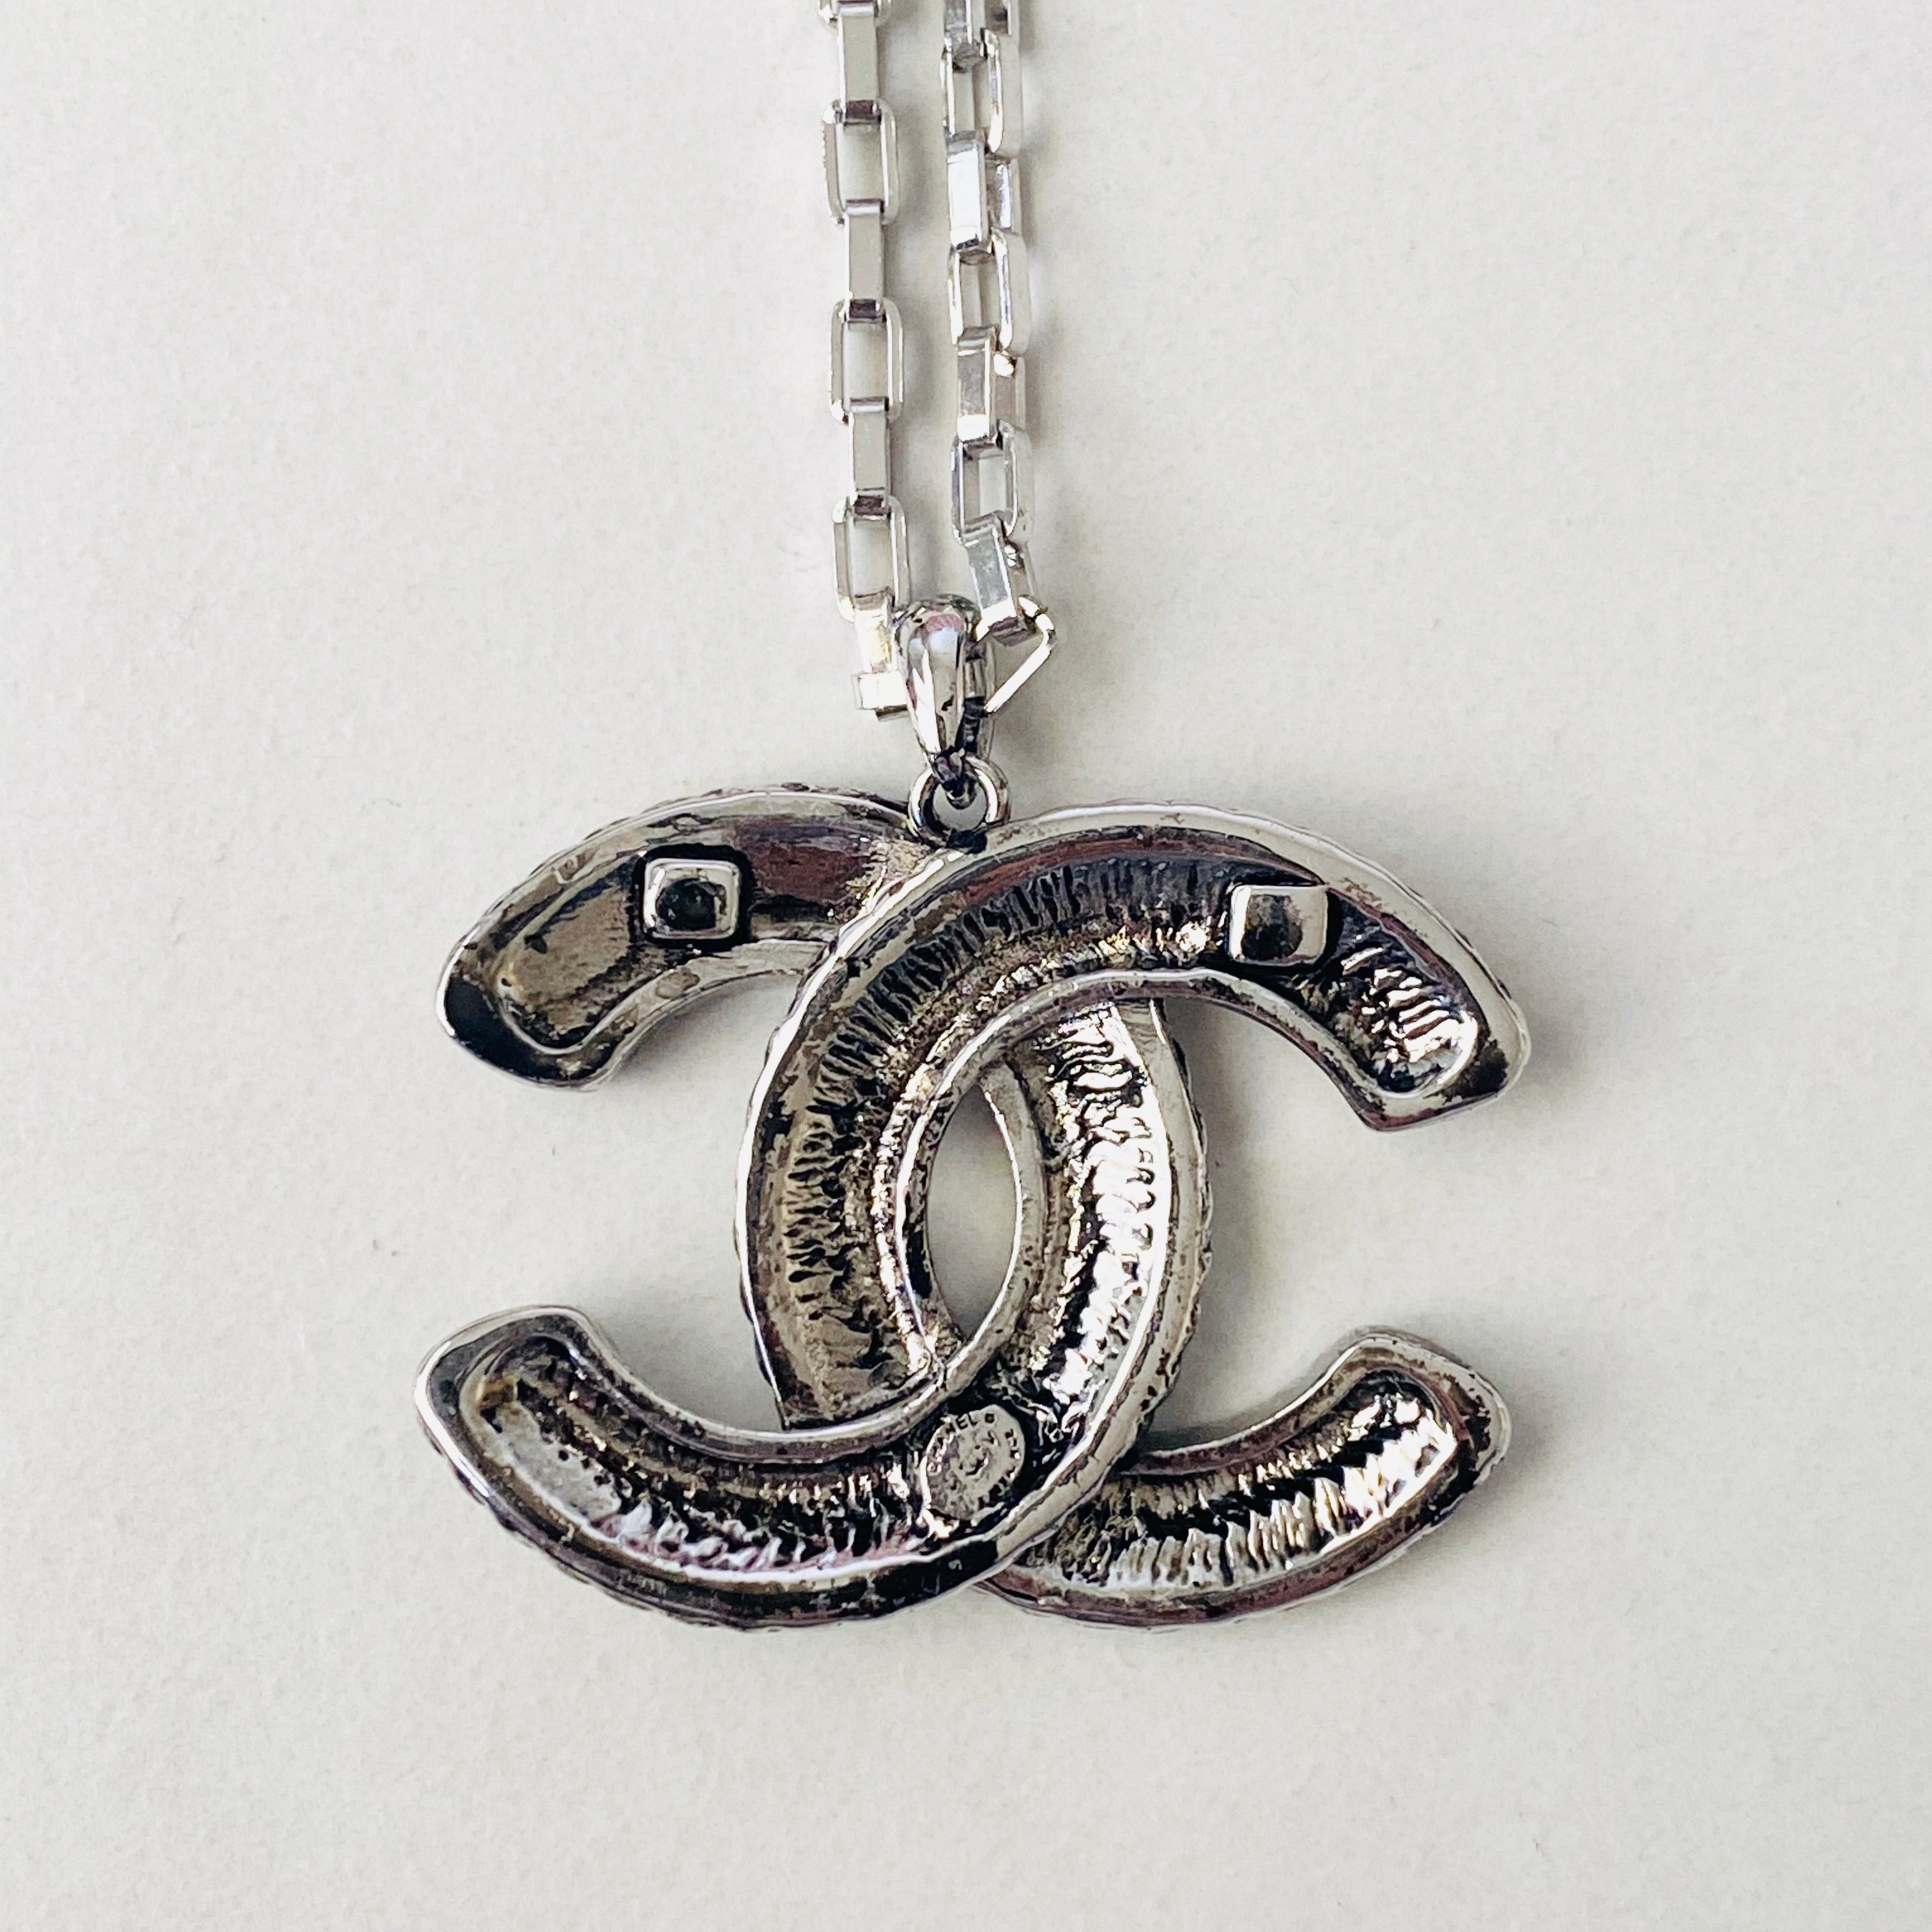 CC White Gold Pendant Necklace